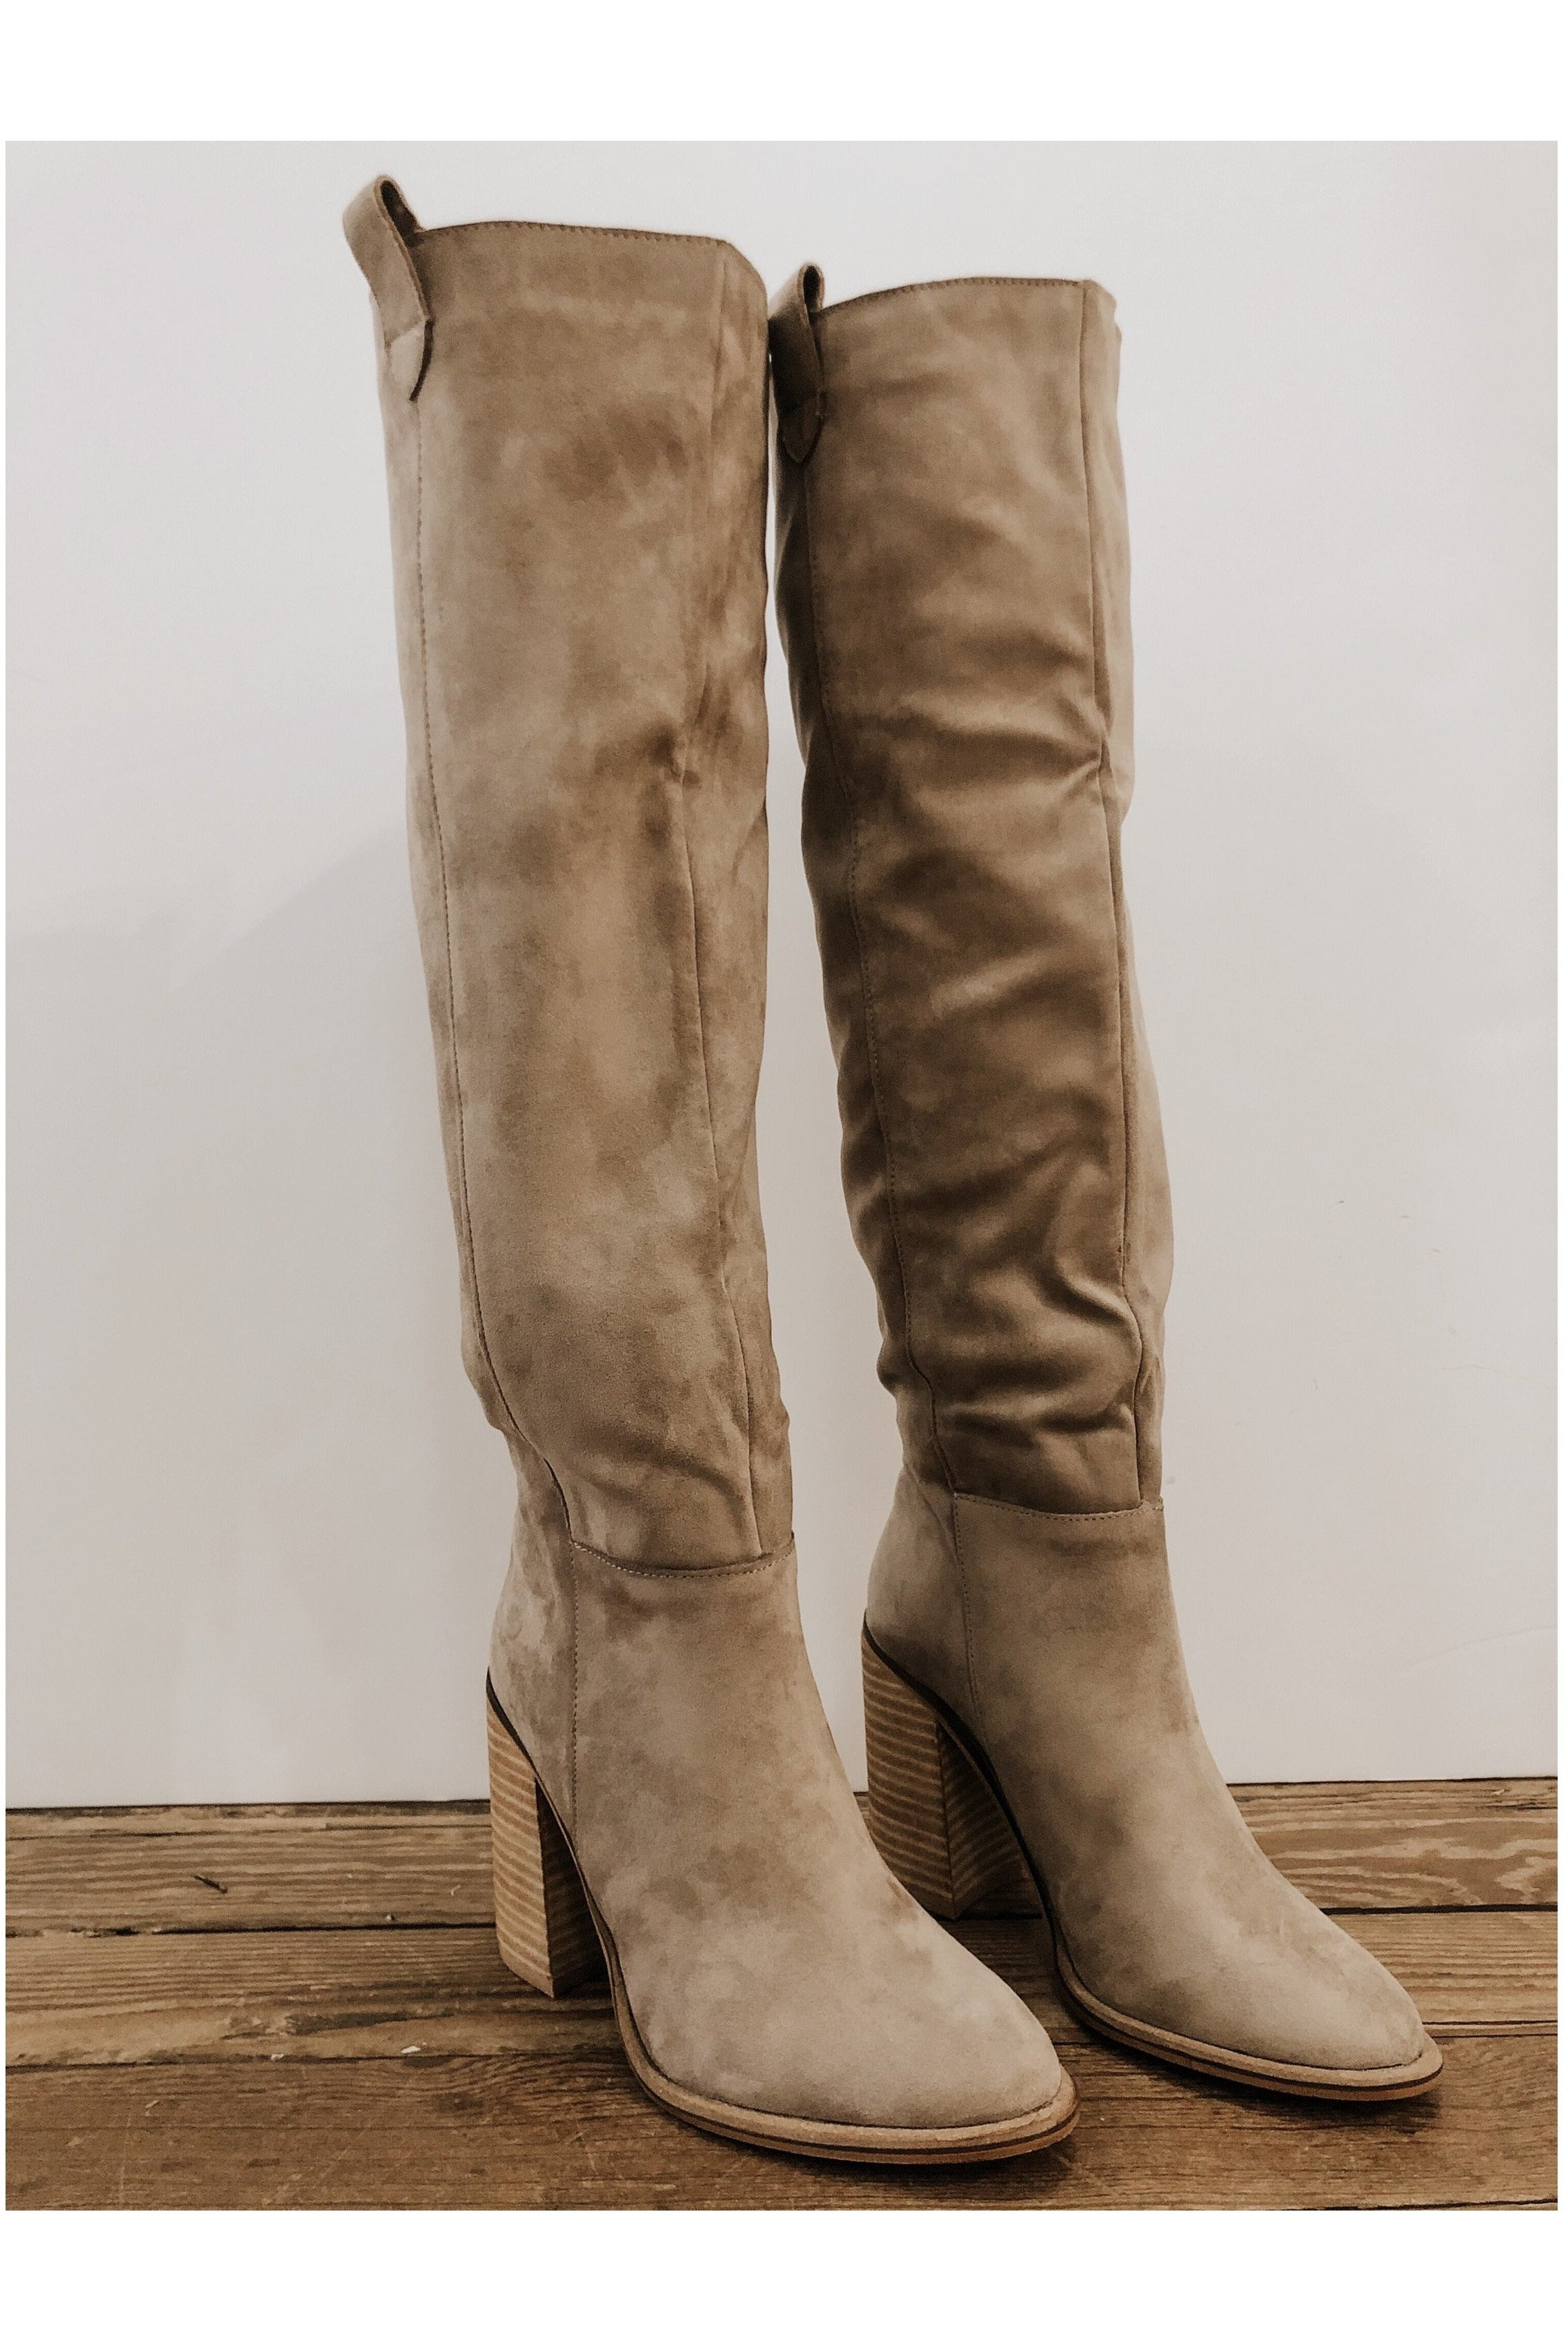 Saint Boots in Taupe